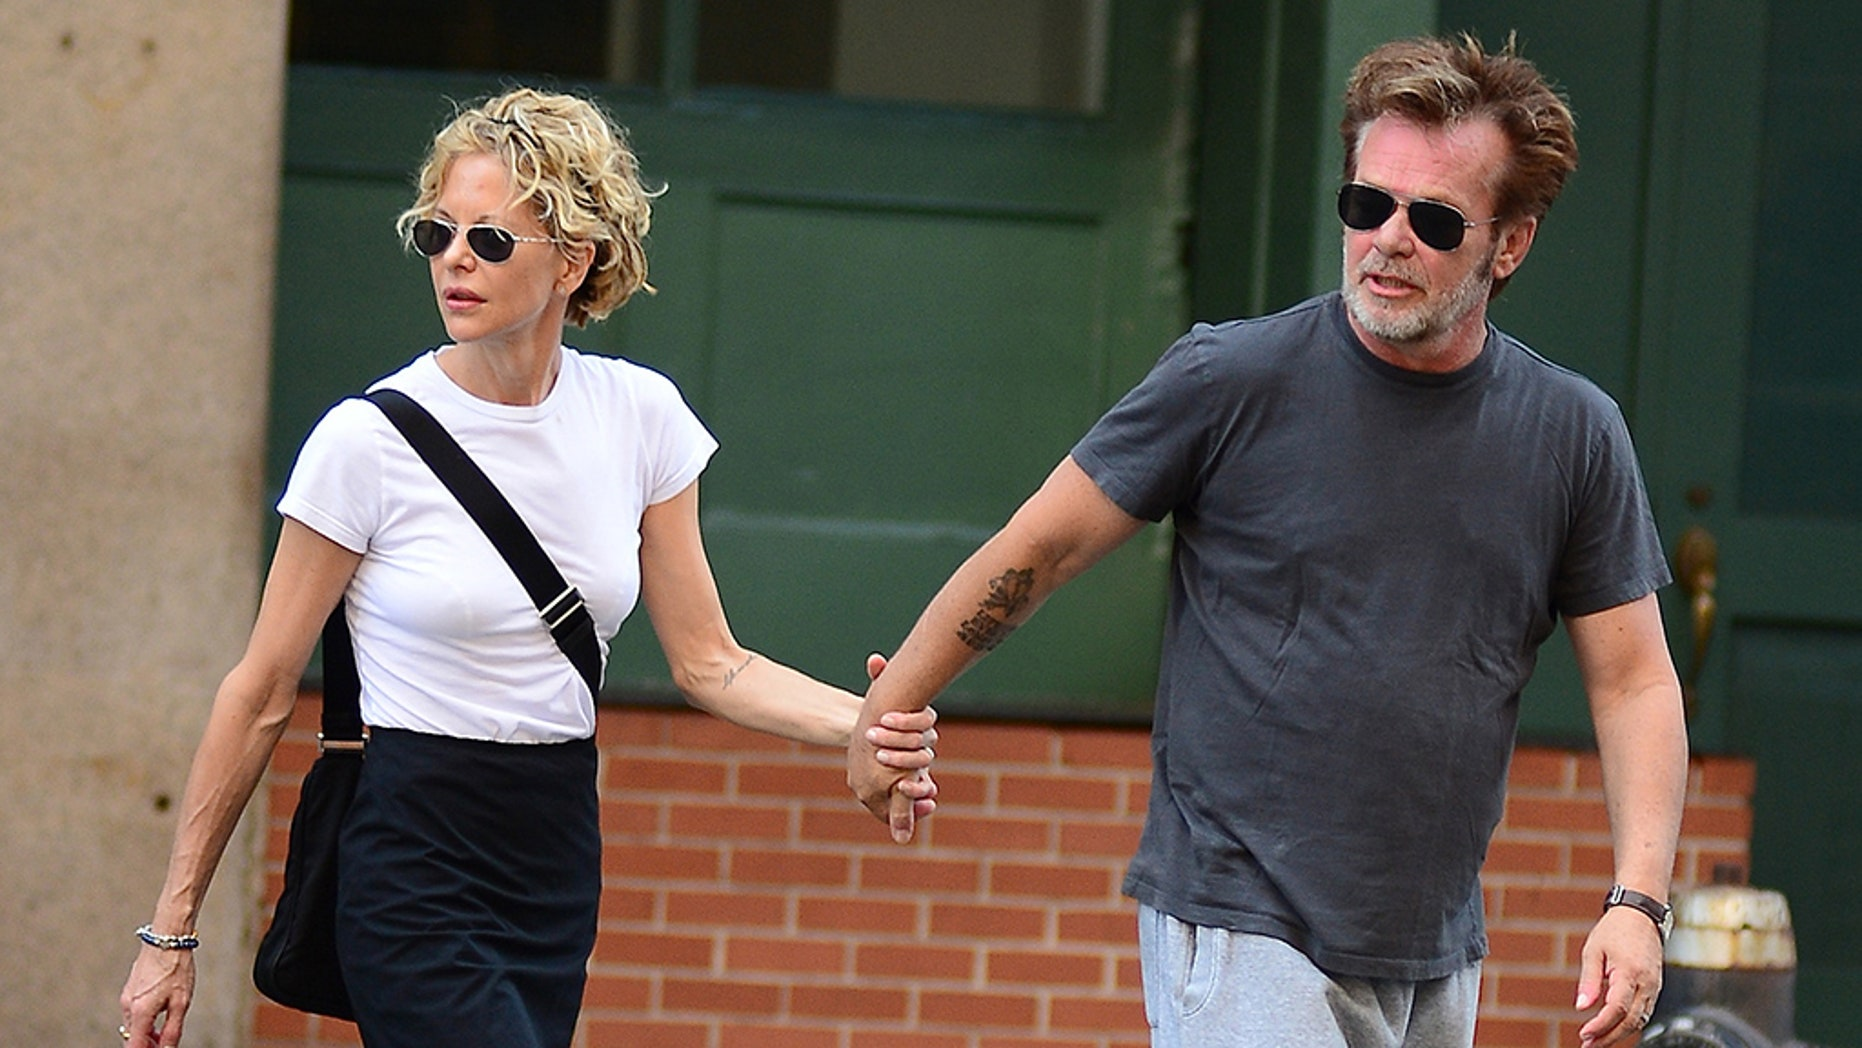 Meg Ryan confirms engagement to John Mellencamp